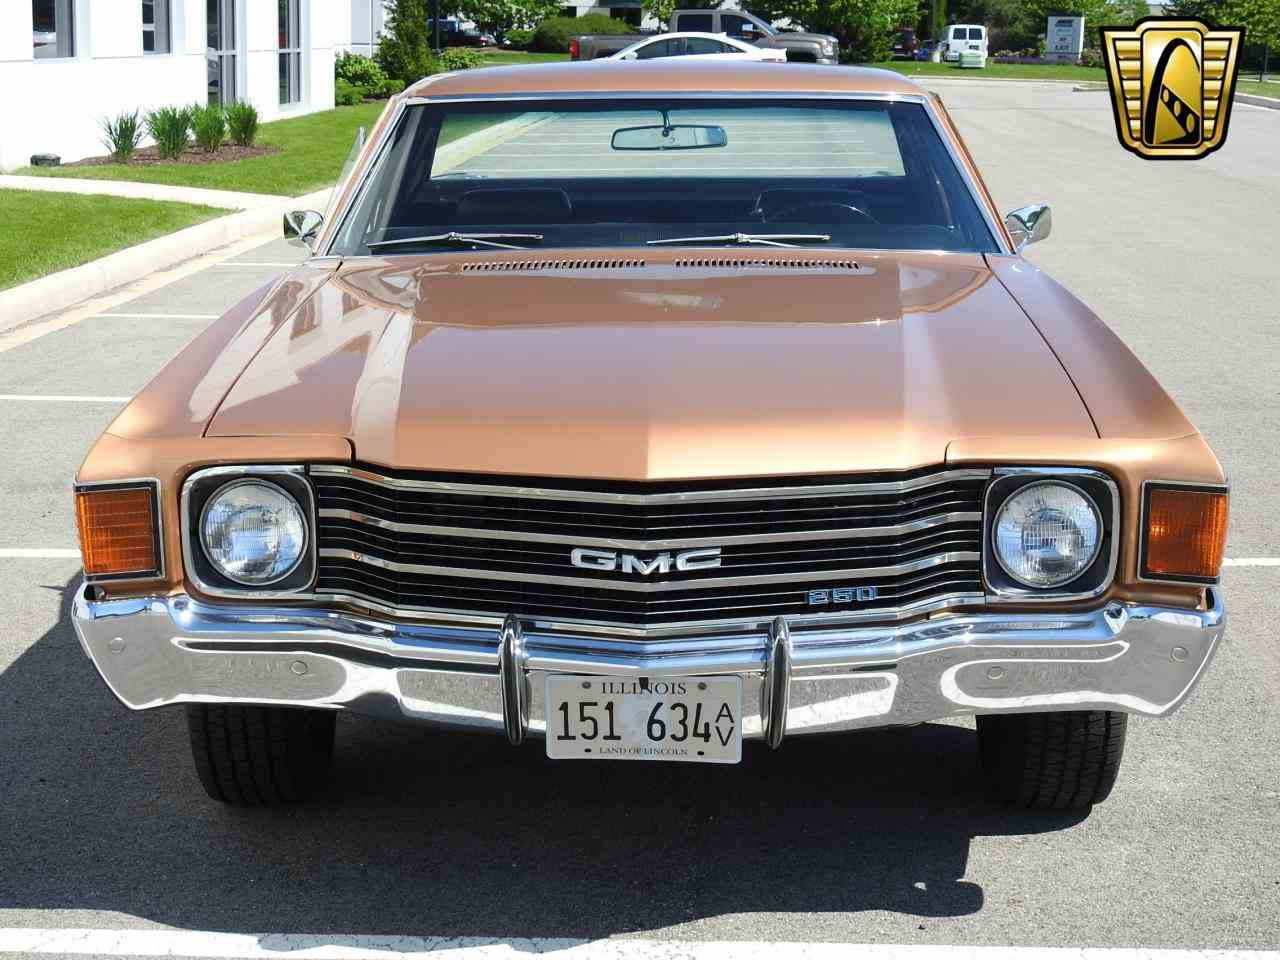 Large Picture of Classic 1972 GMC Sprint located in Kenosha Wisconsin - $29,995.00 - L8EJ